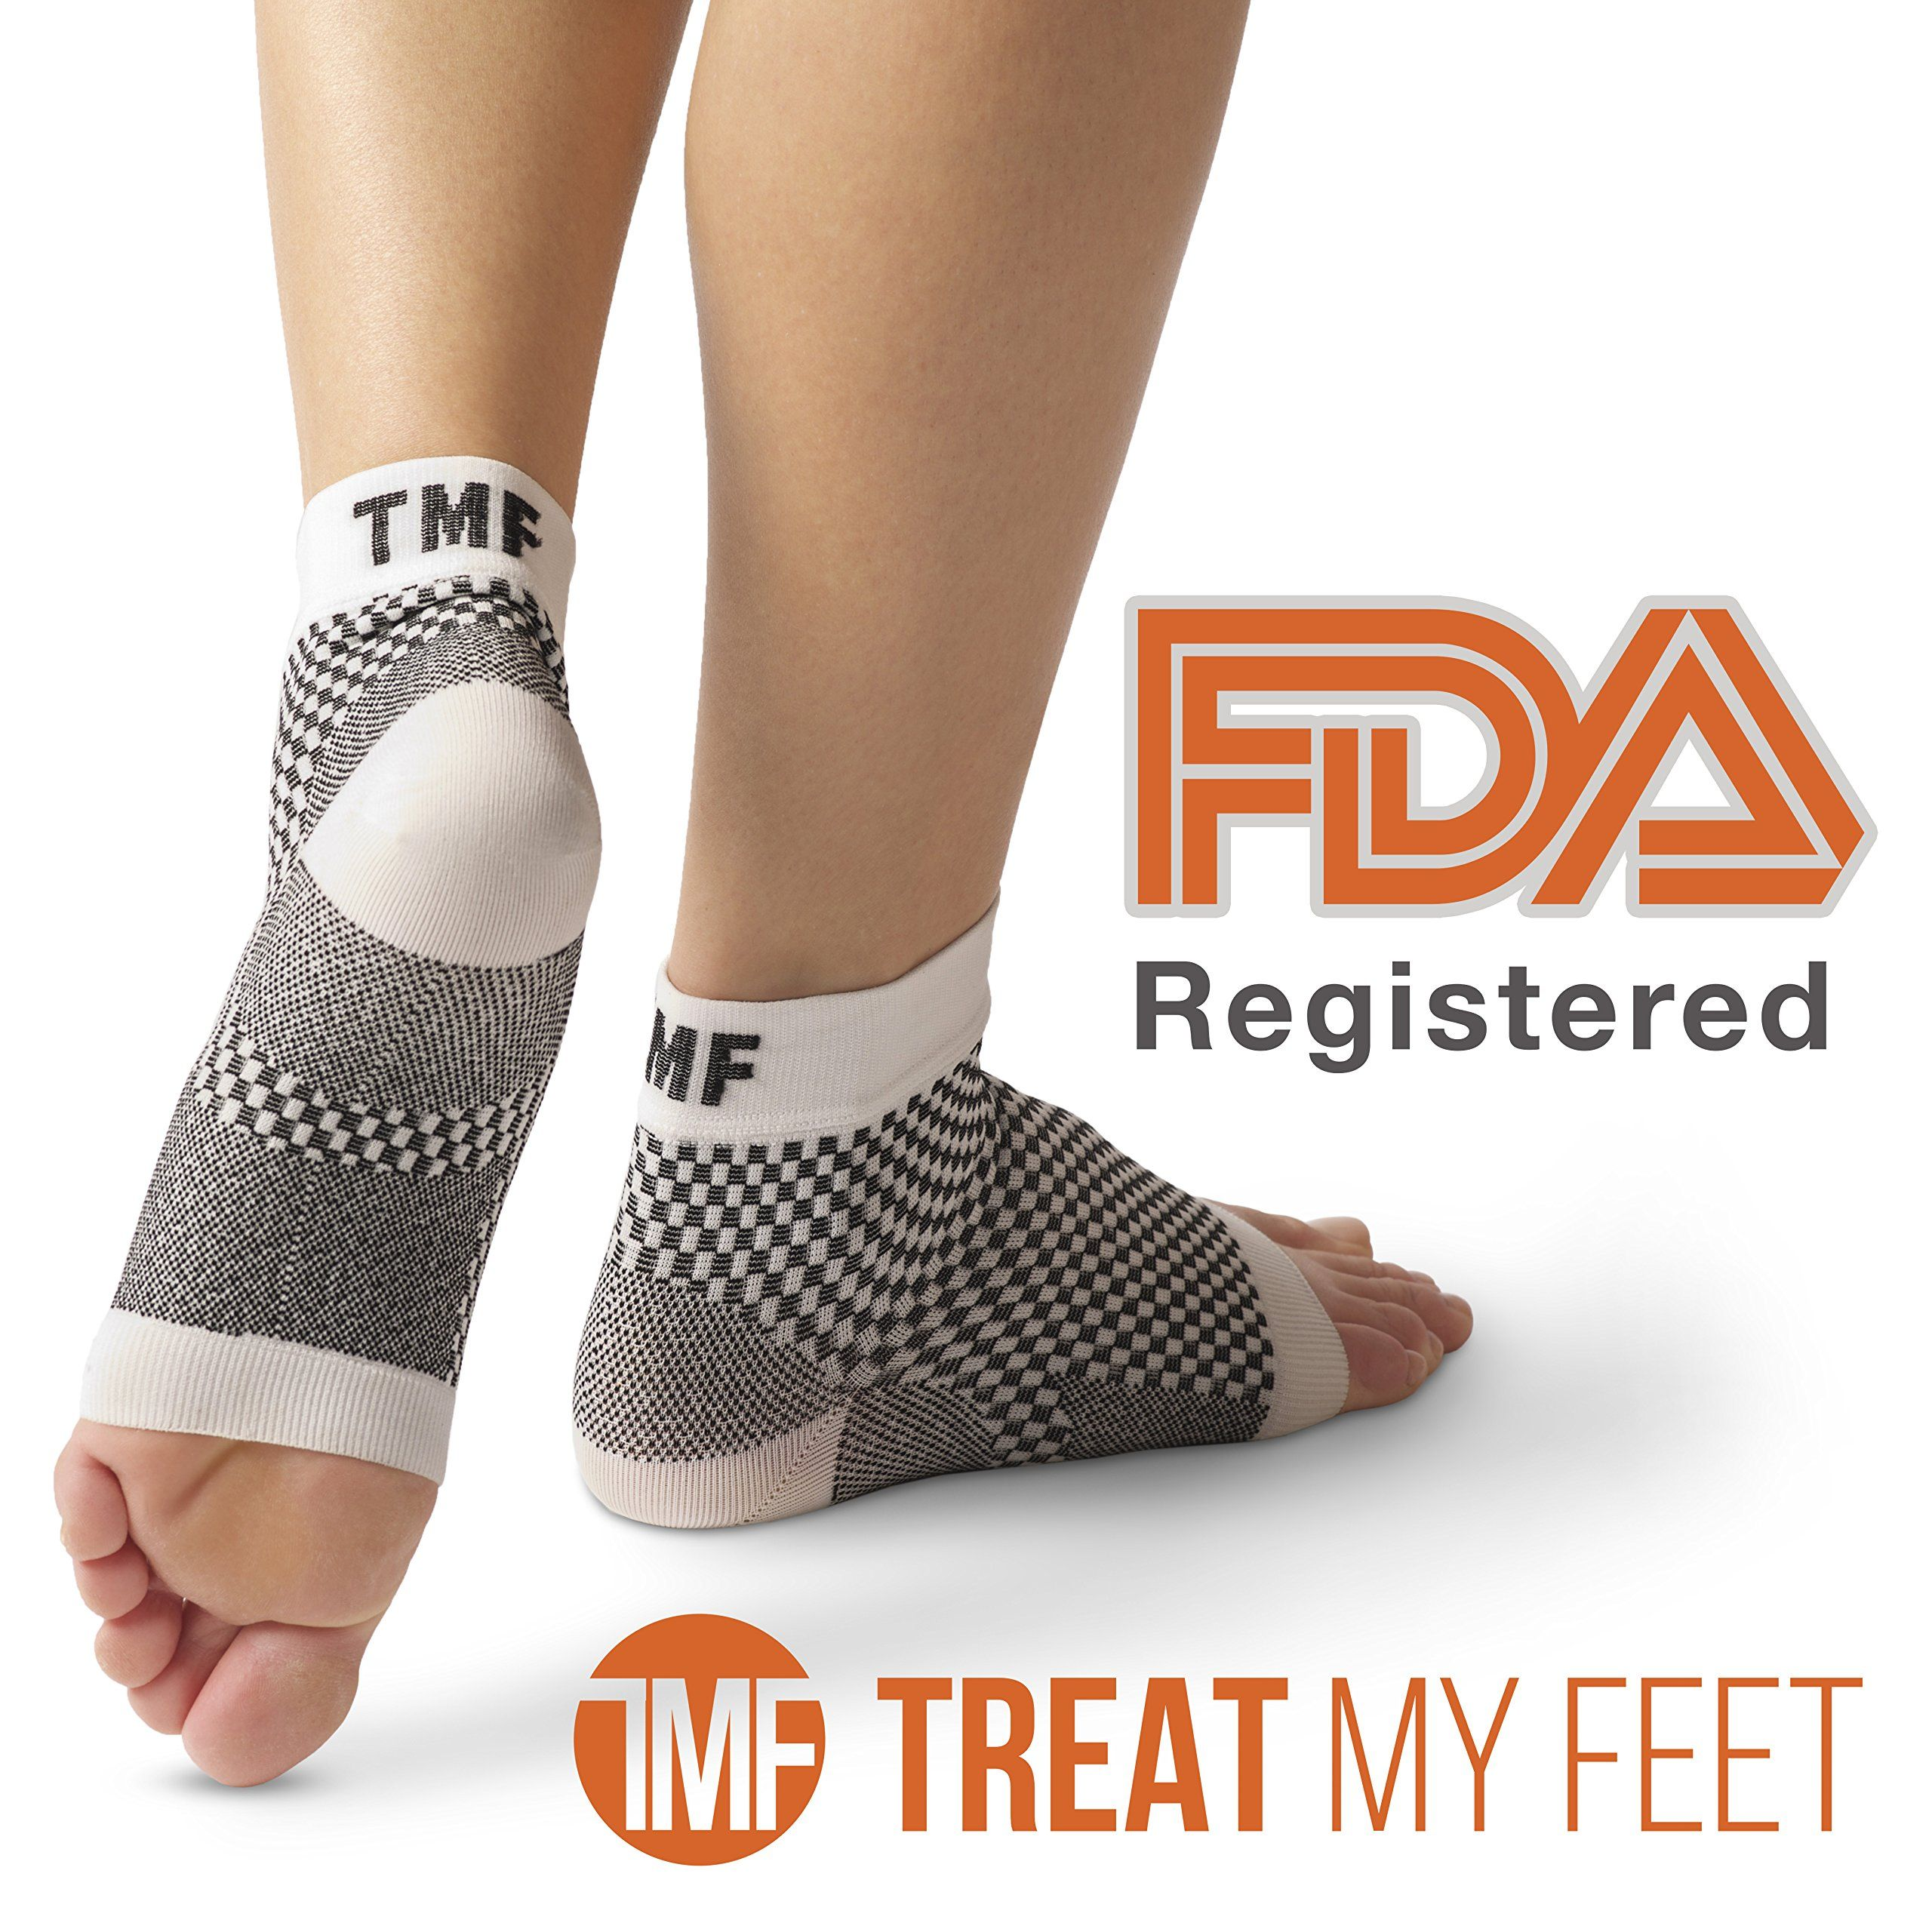 418bd387da5 Amazon.com: Plantar Fasciitis Sleeve & Compression Sock For Feet:  FDA-Registered Stocking For Heel, Ankle, Arch Support (Pair) - Edema Relief  Orthopedic ...